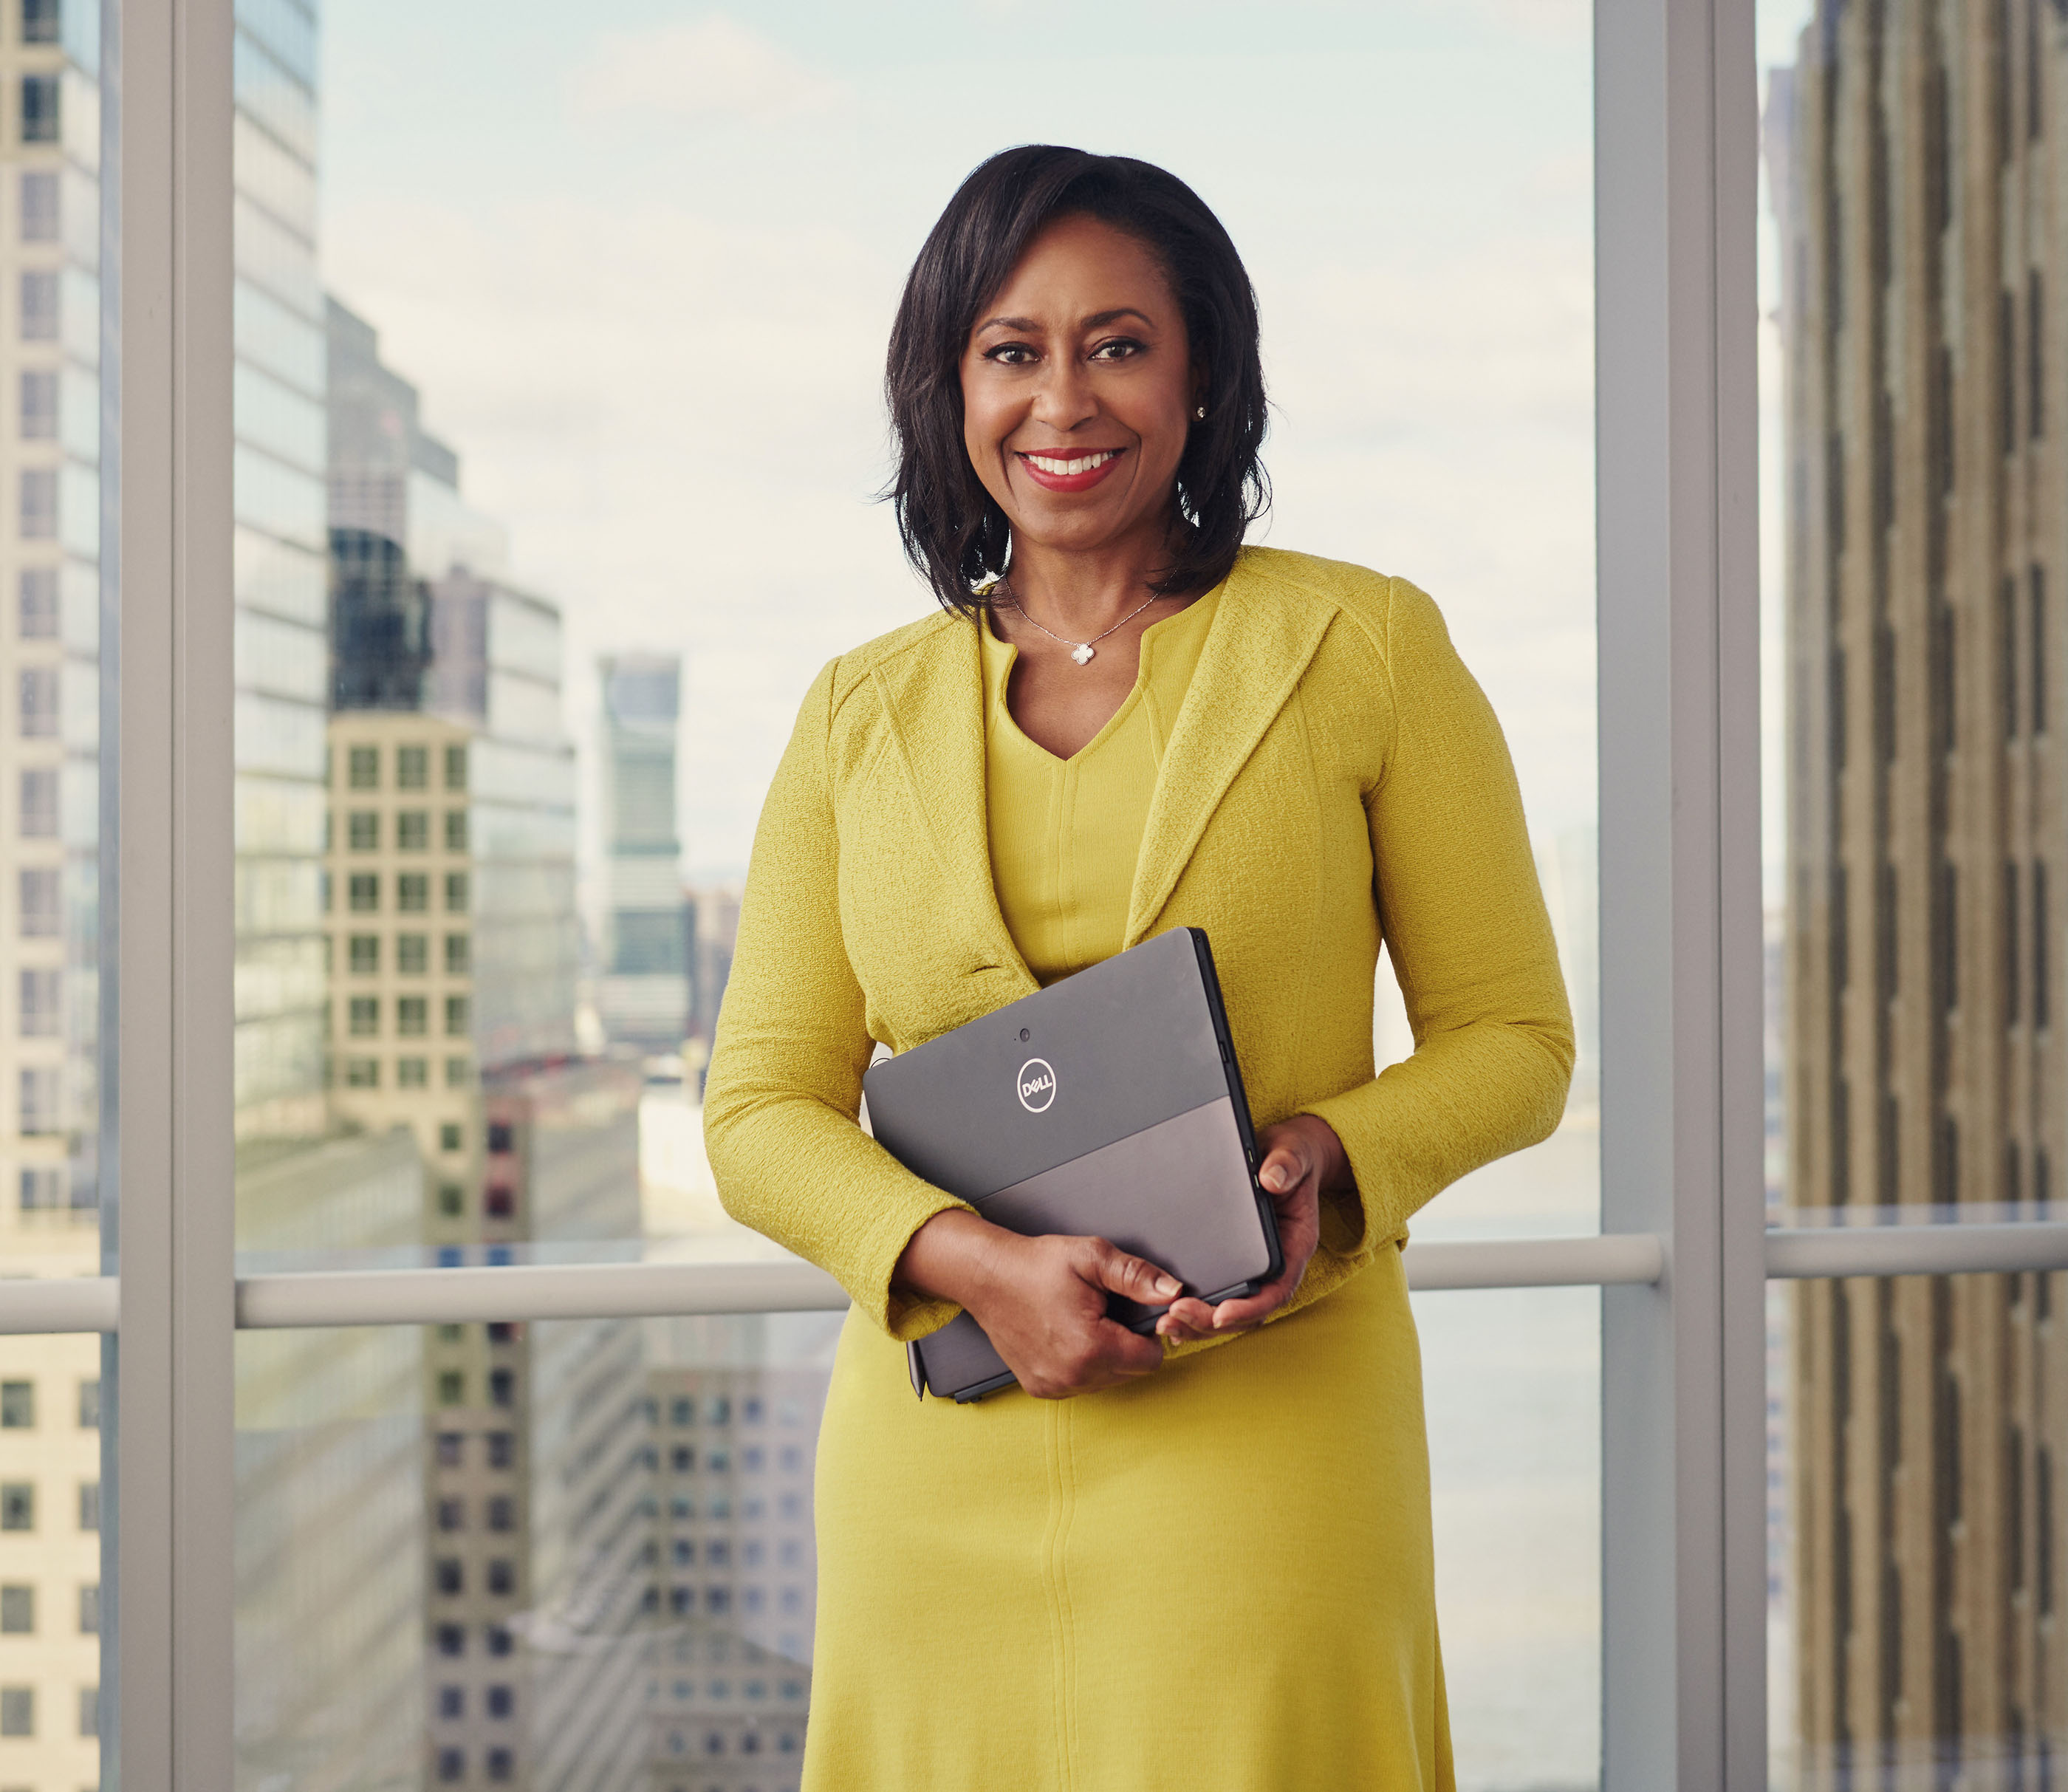 Dell business portrait one